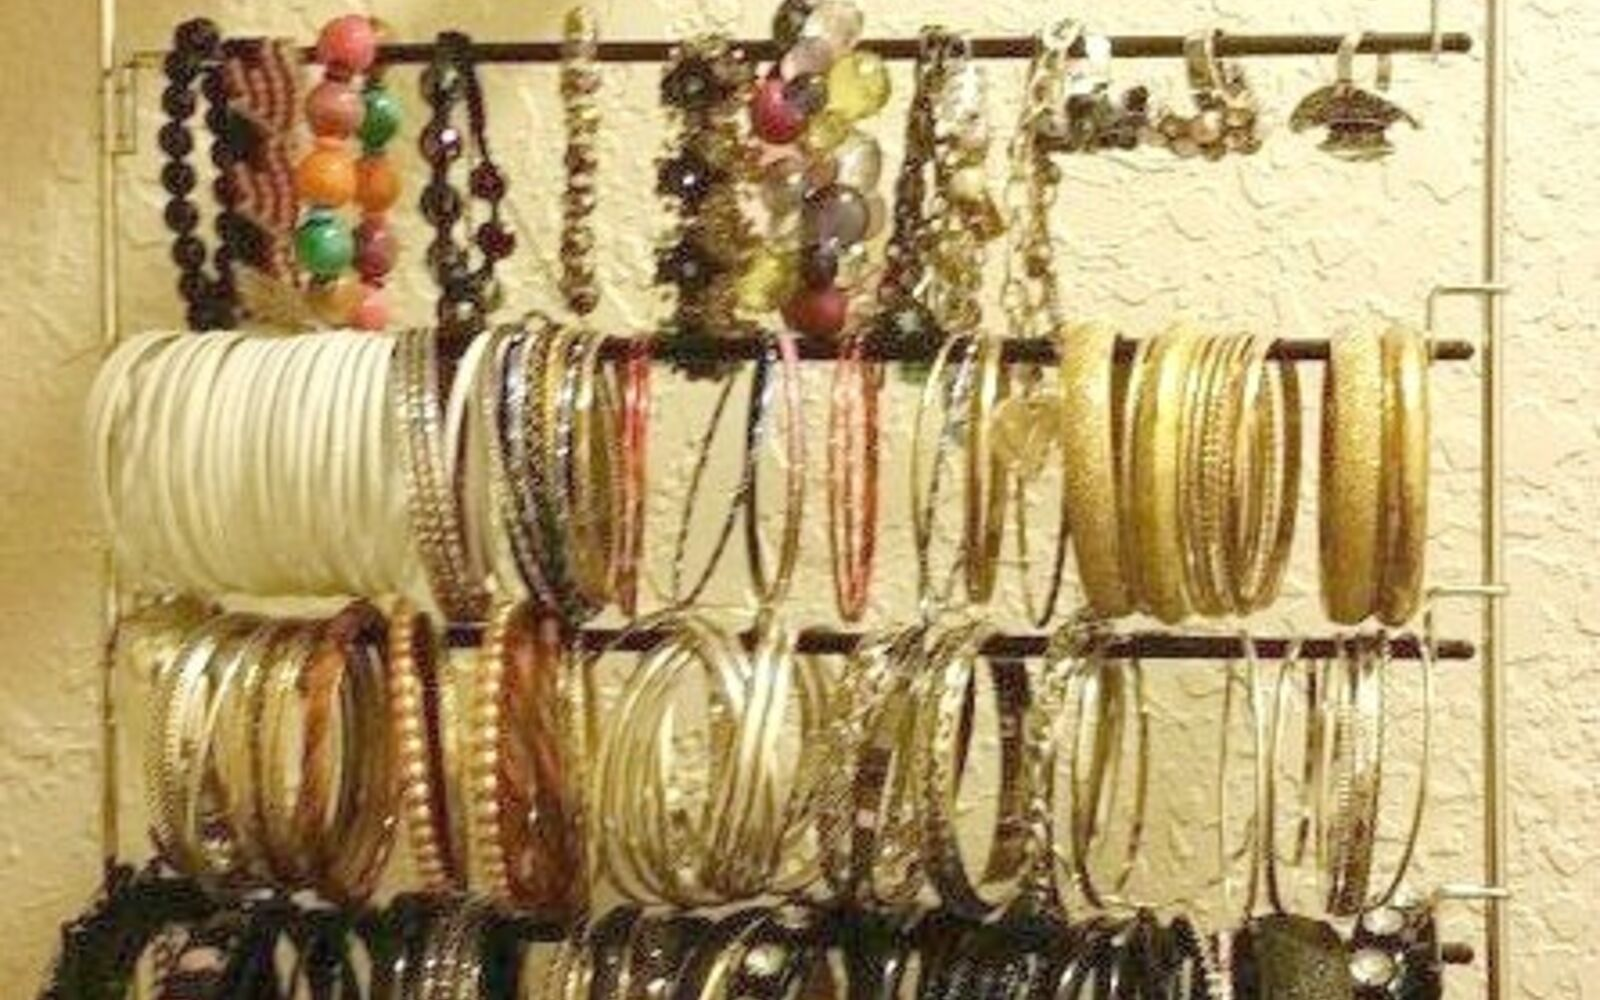 s the best organizing ideas of 2015 that you should do this year too, organizing, Repurpose Pants Hangers for Jewelry